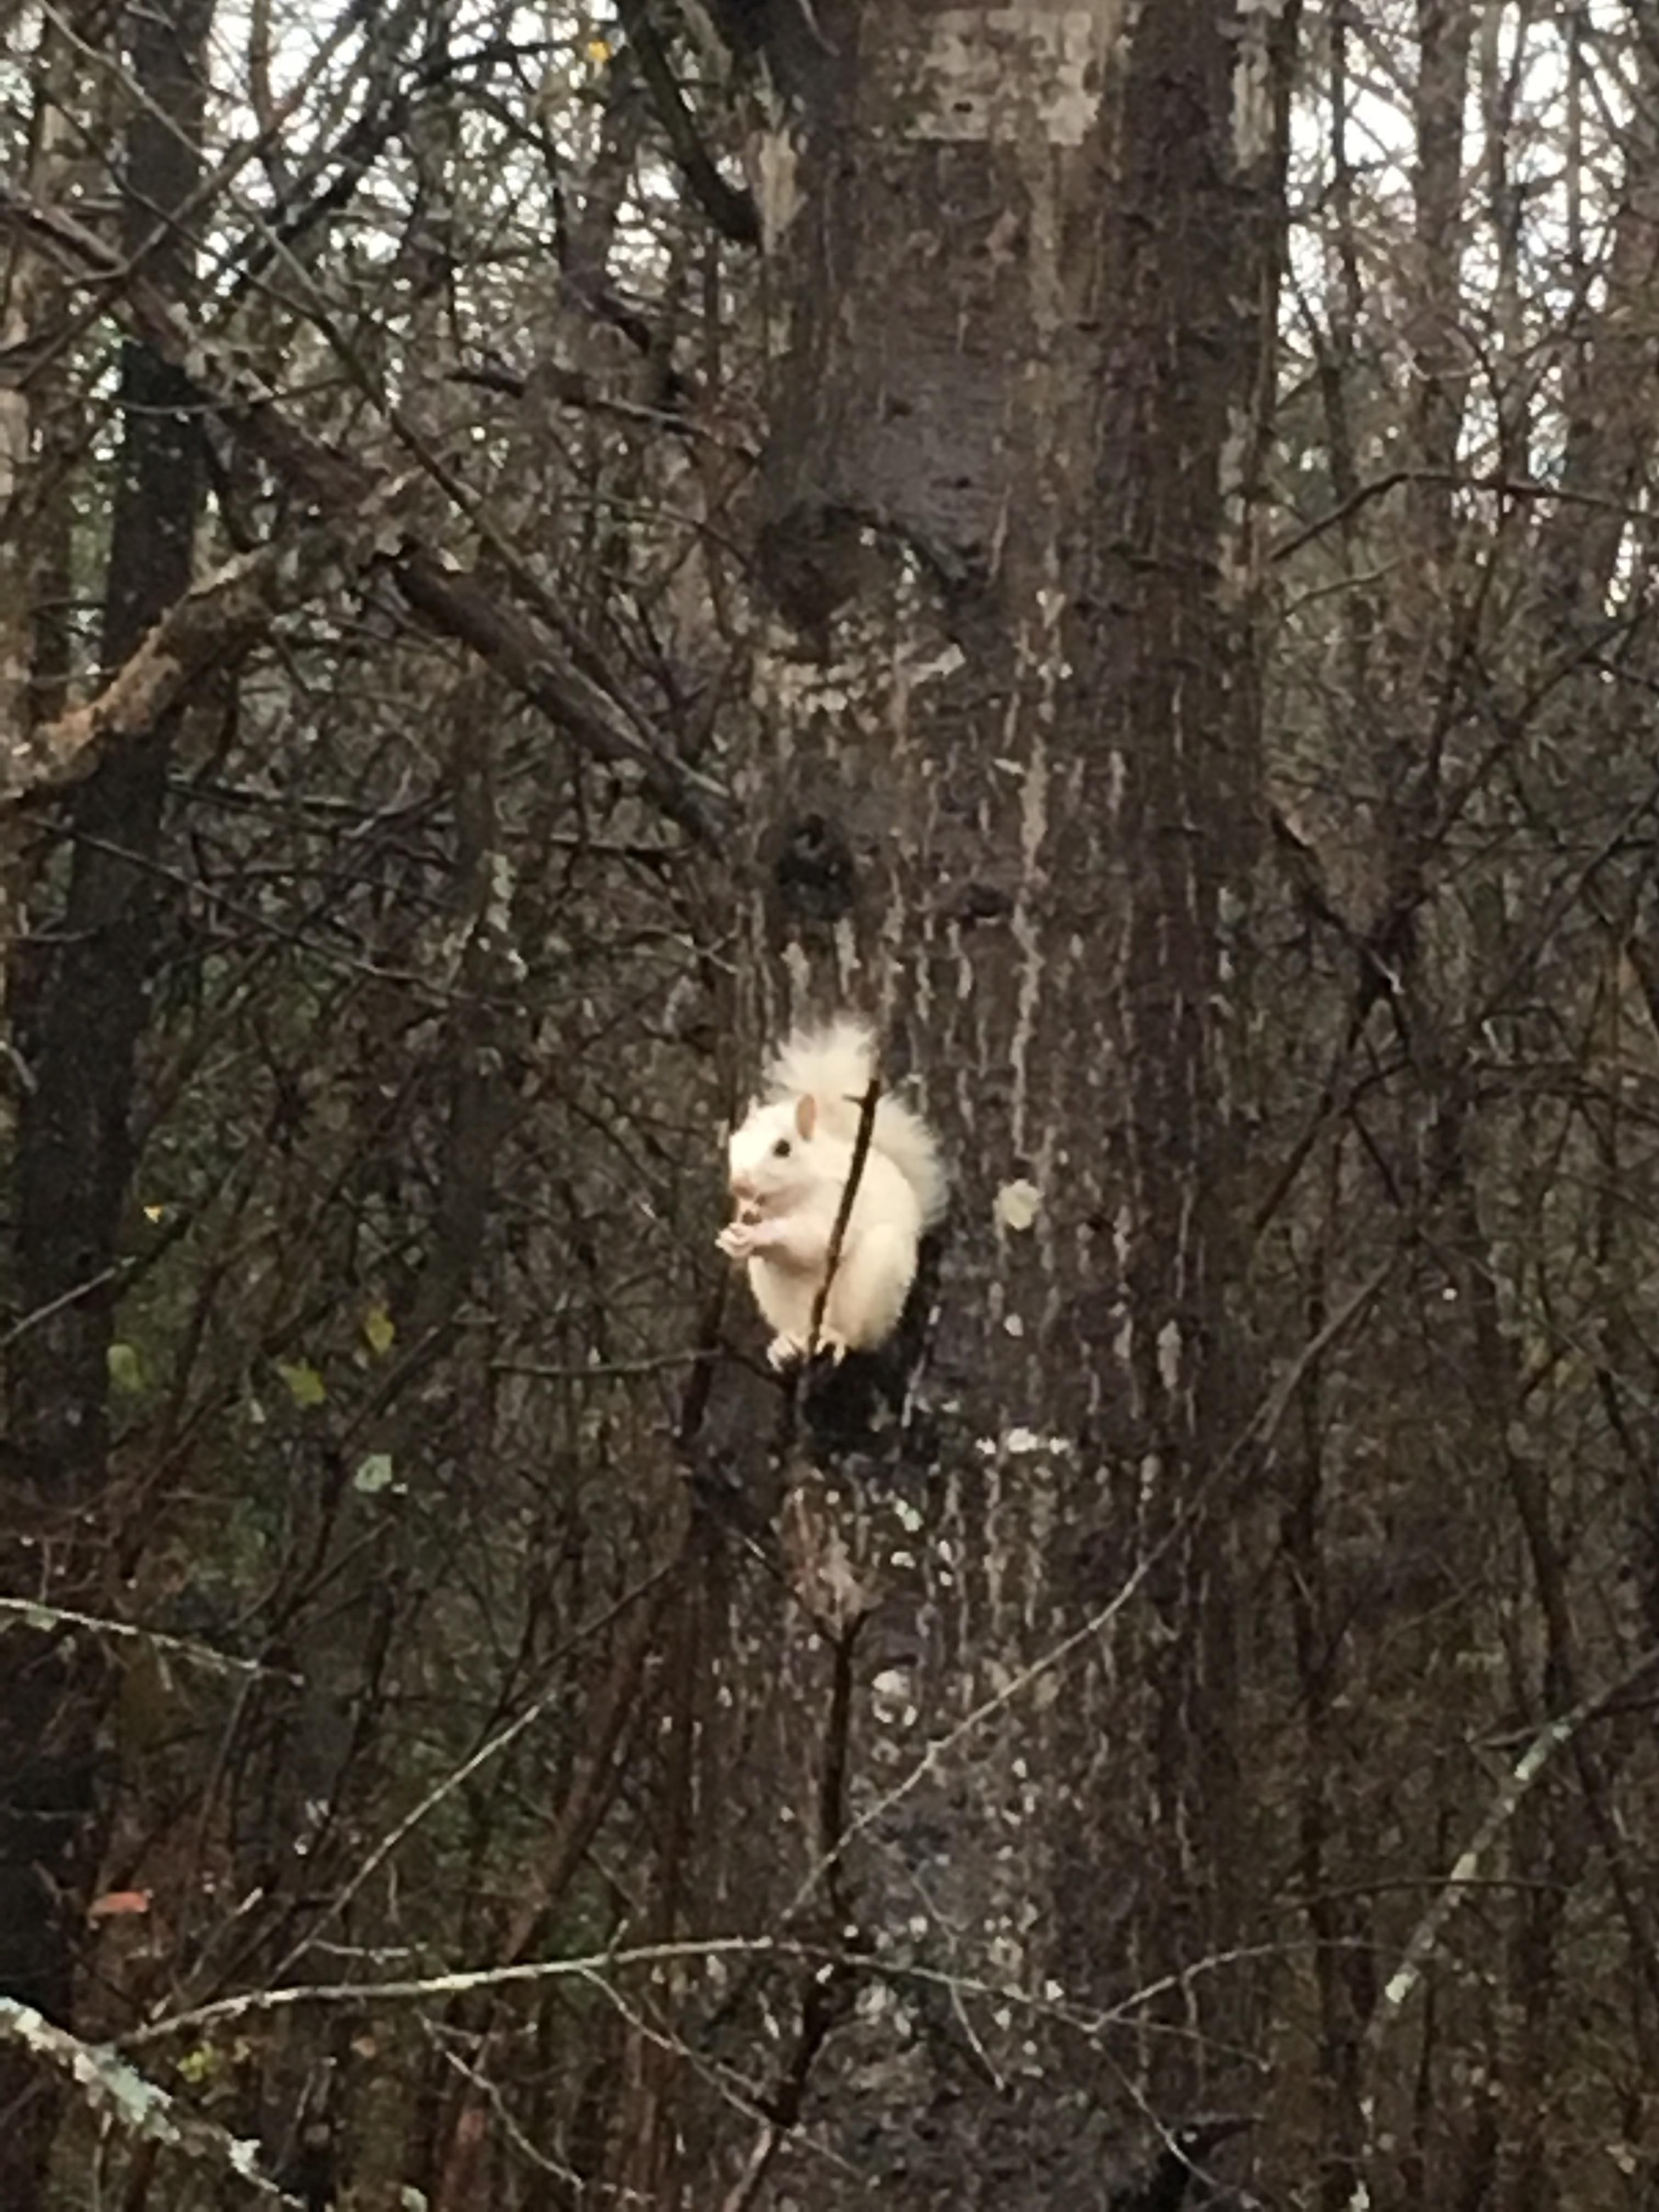 An Albino Squirrel in the Forest